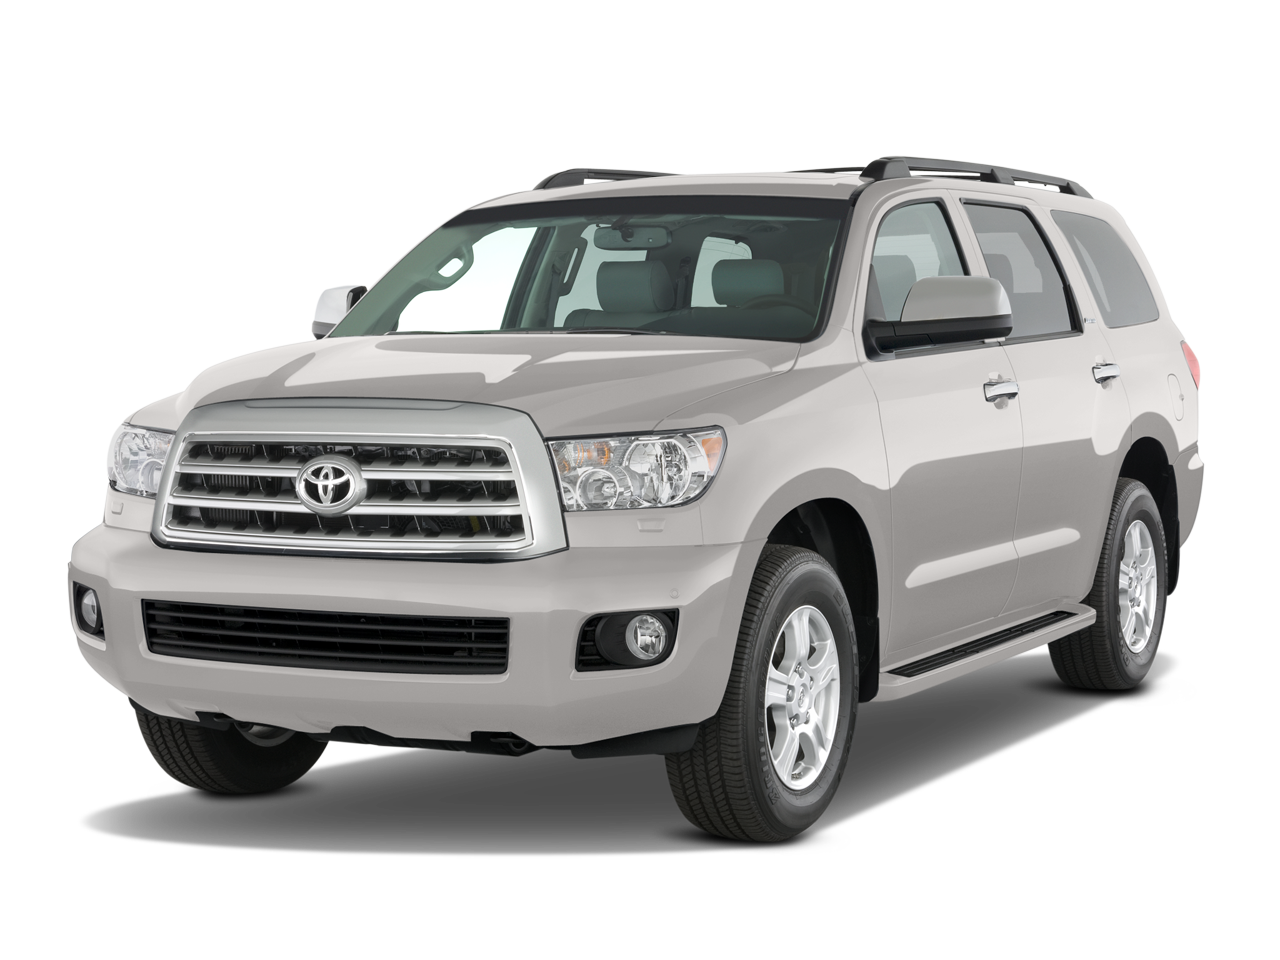 new 2017 toyota sequoia platinum near herculaneum mo. Black Bedroom Furniture Sets. Home Design Ideas